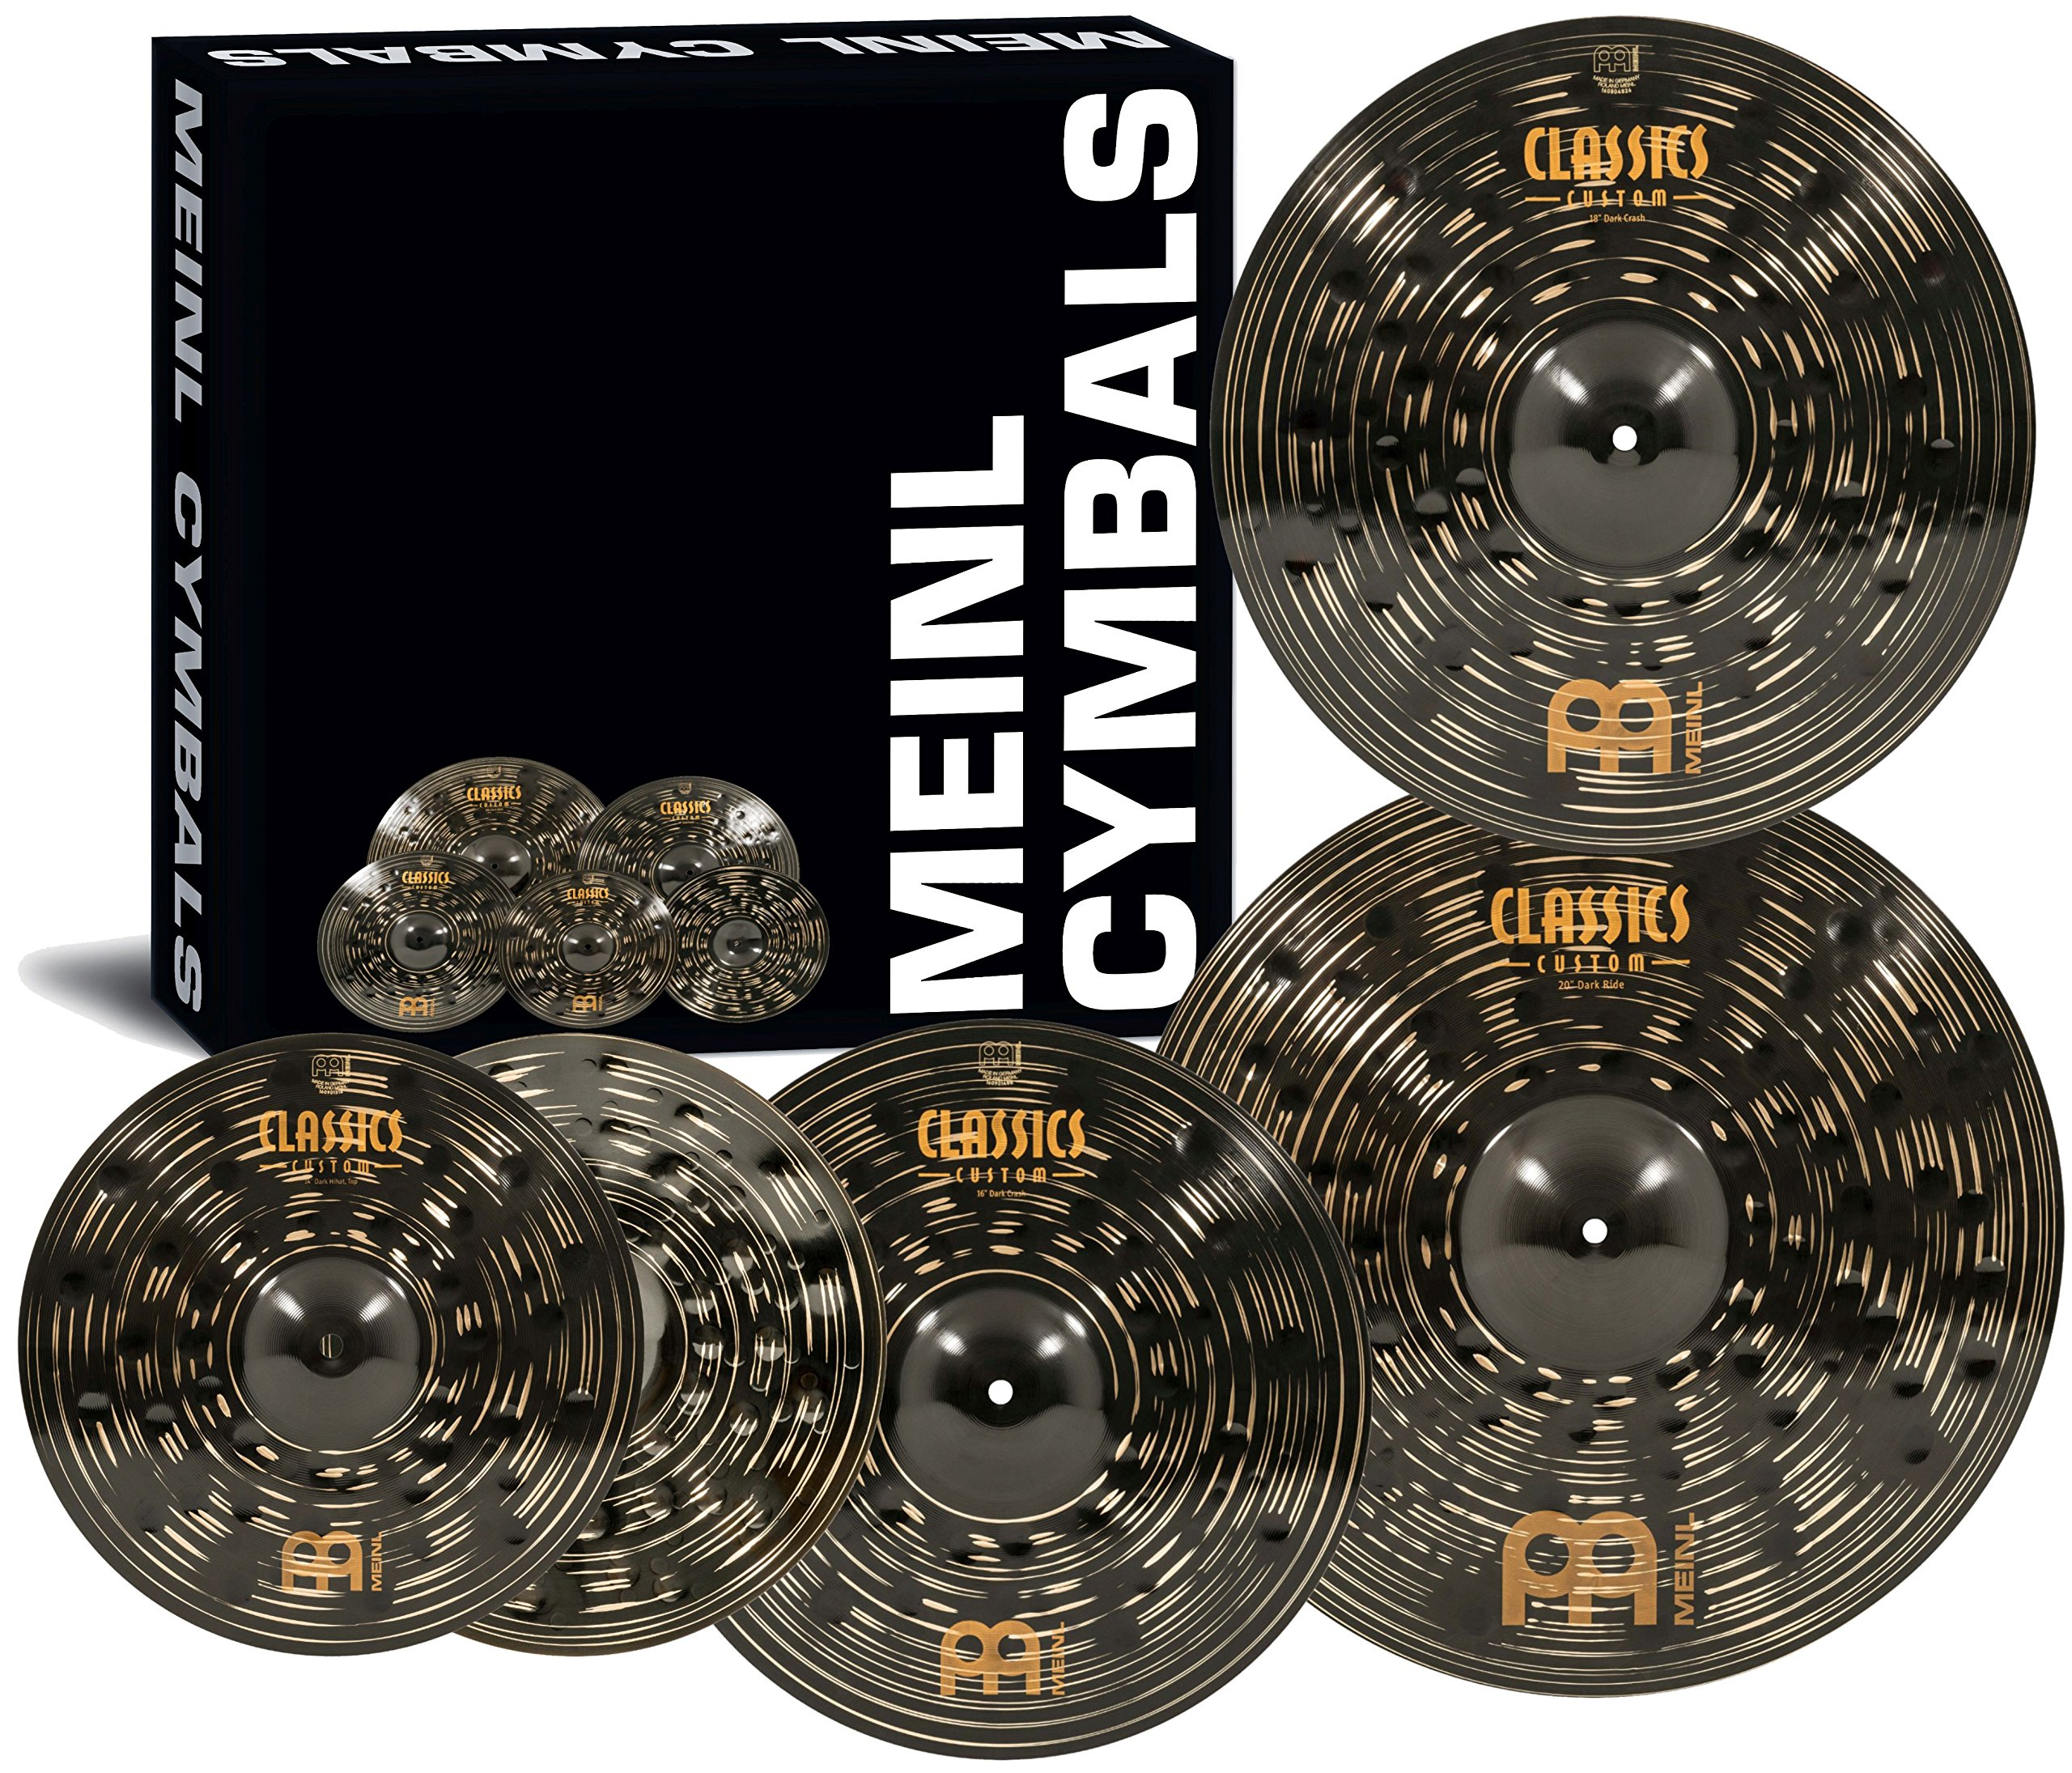 Meinl Cymbal Set Box Pack with 14'' Hihats, 20'' Ride, 16'' Crash, Plus a FREE 18'' Crash - Classics Custom Dark - Made In Germany, TWO-YEAR WARRANY (CCD460+18) by Meinl Cymbals